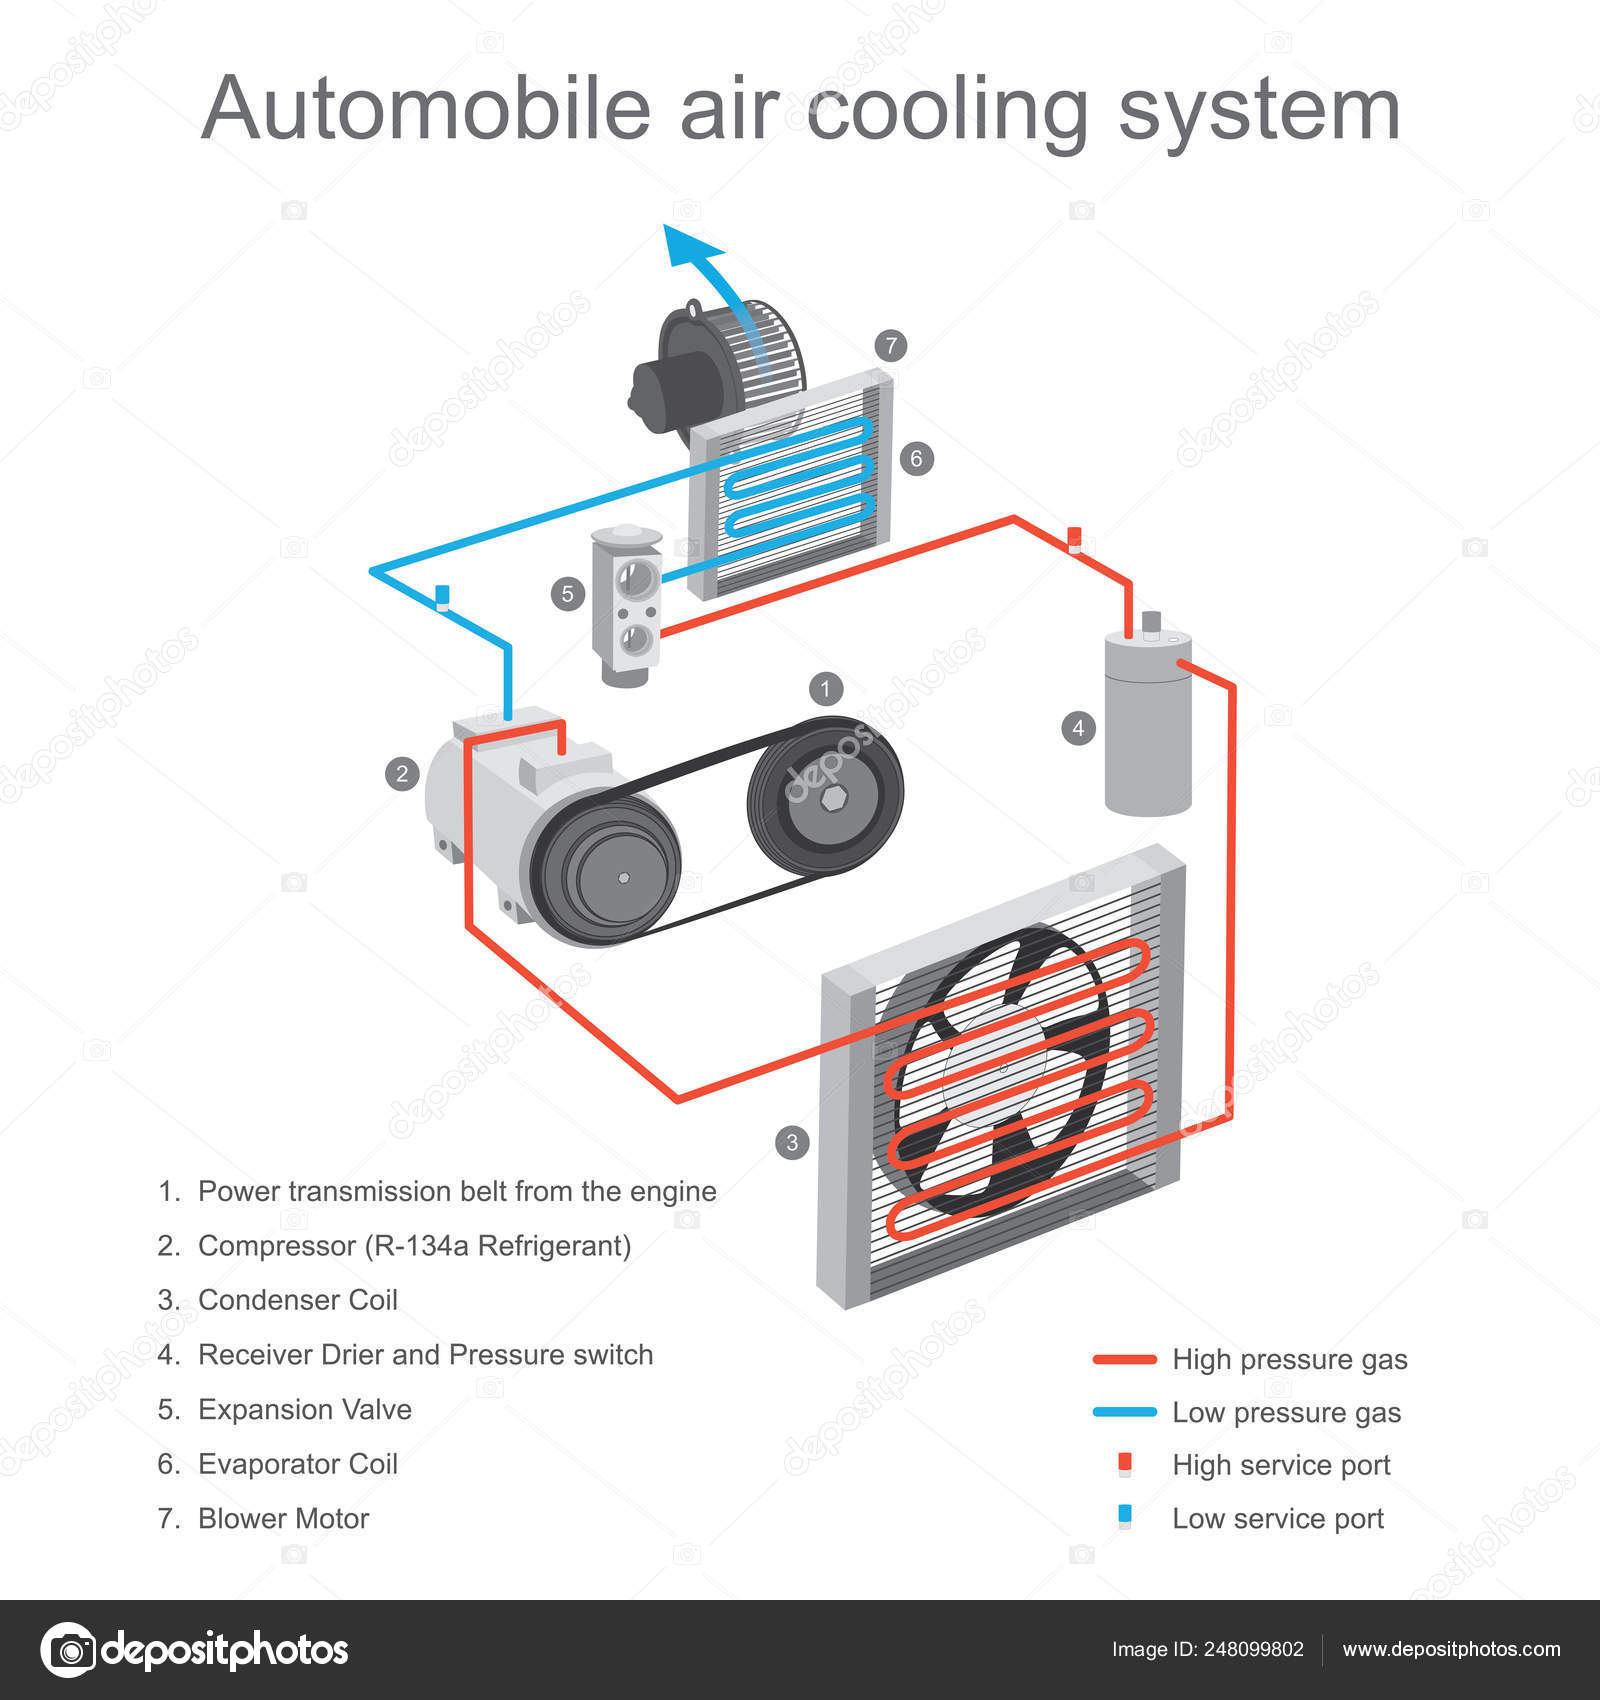 hight resolution of automobile air cooling system the air cooling system in the car stock illustration